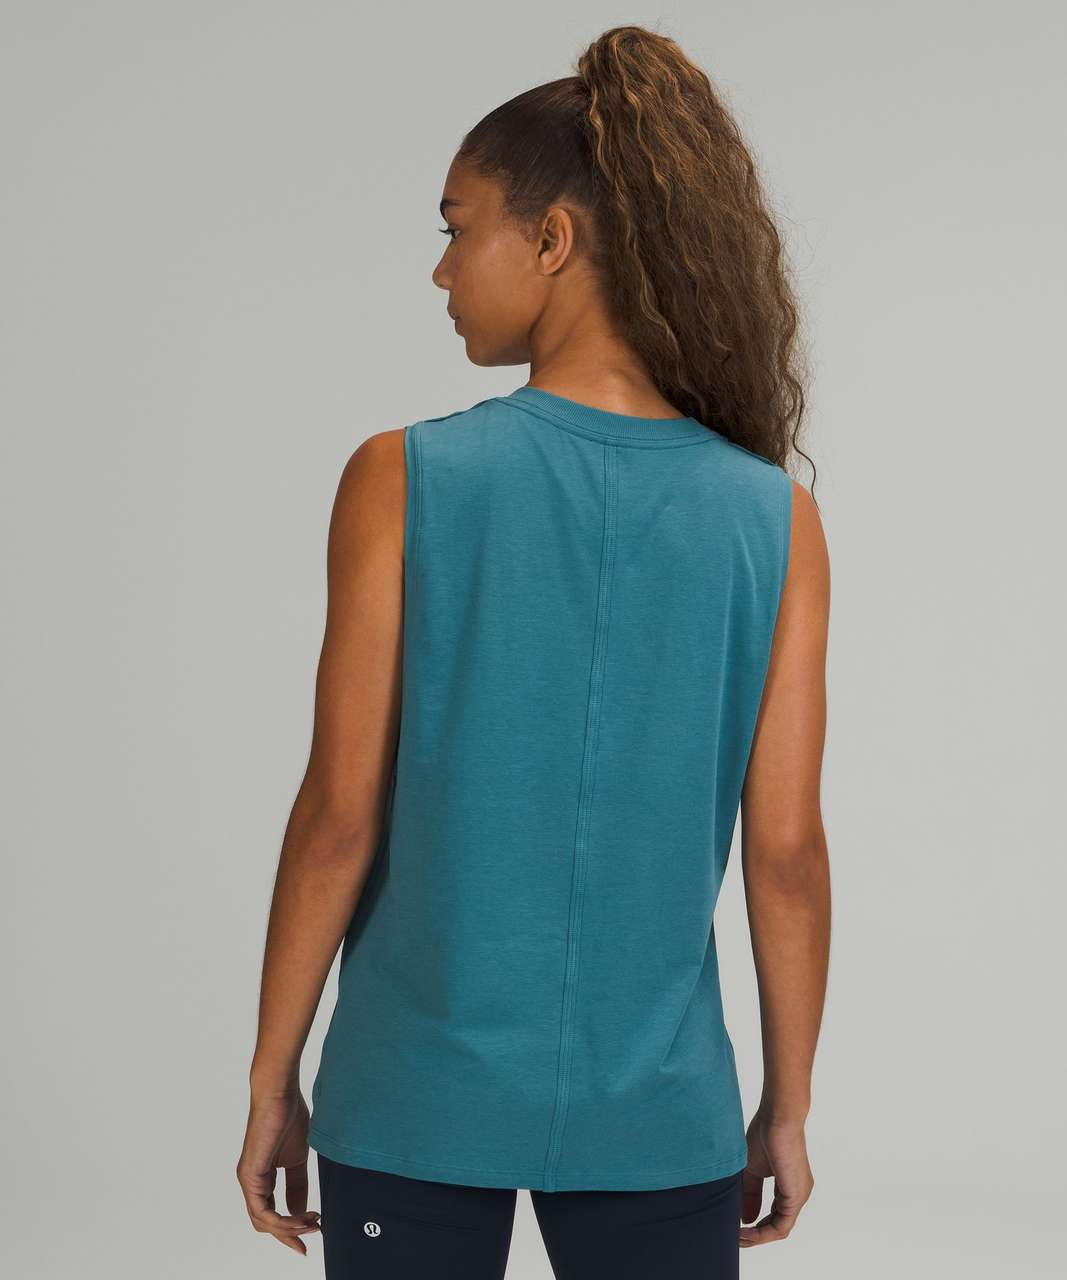 Lululemon All Yours Tank Top *Graphic - Capture Blue